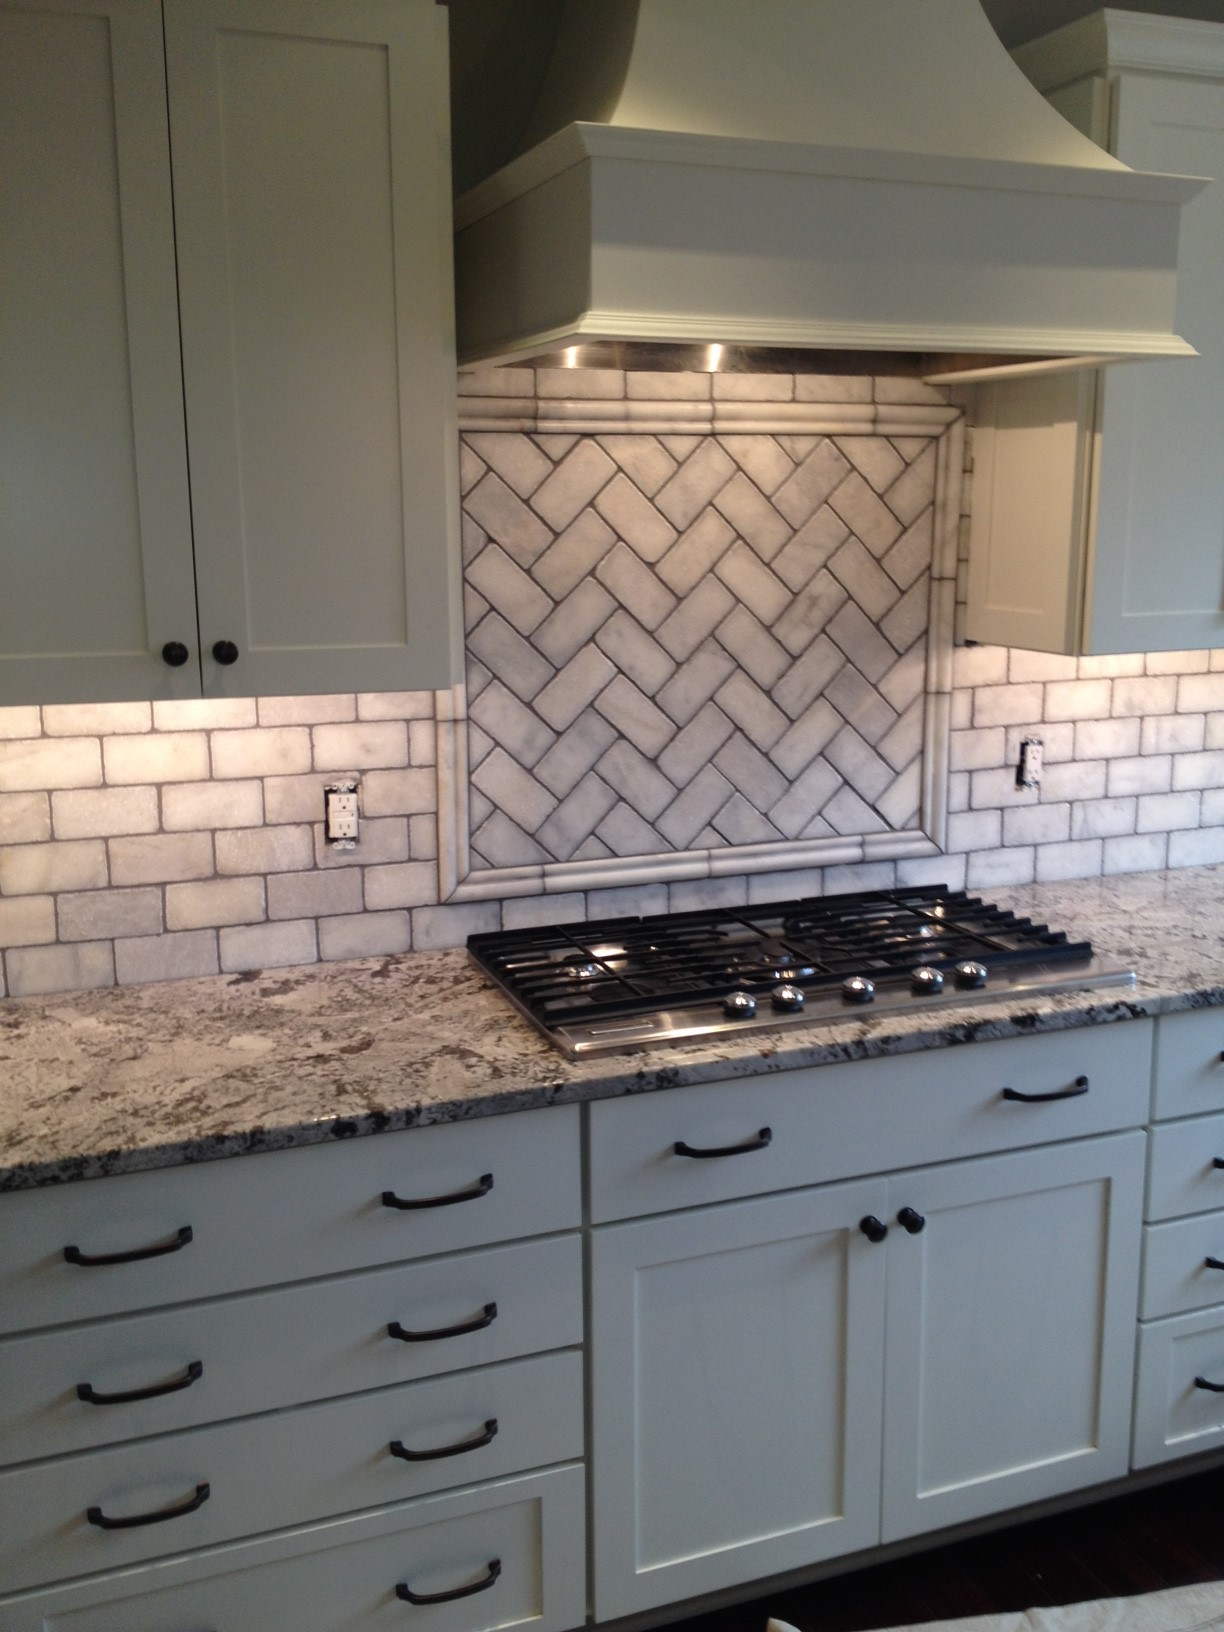 A backsplash was added to this new kitchen